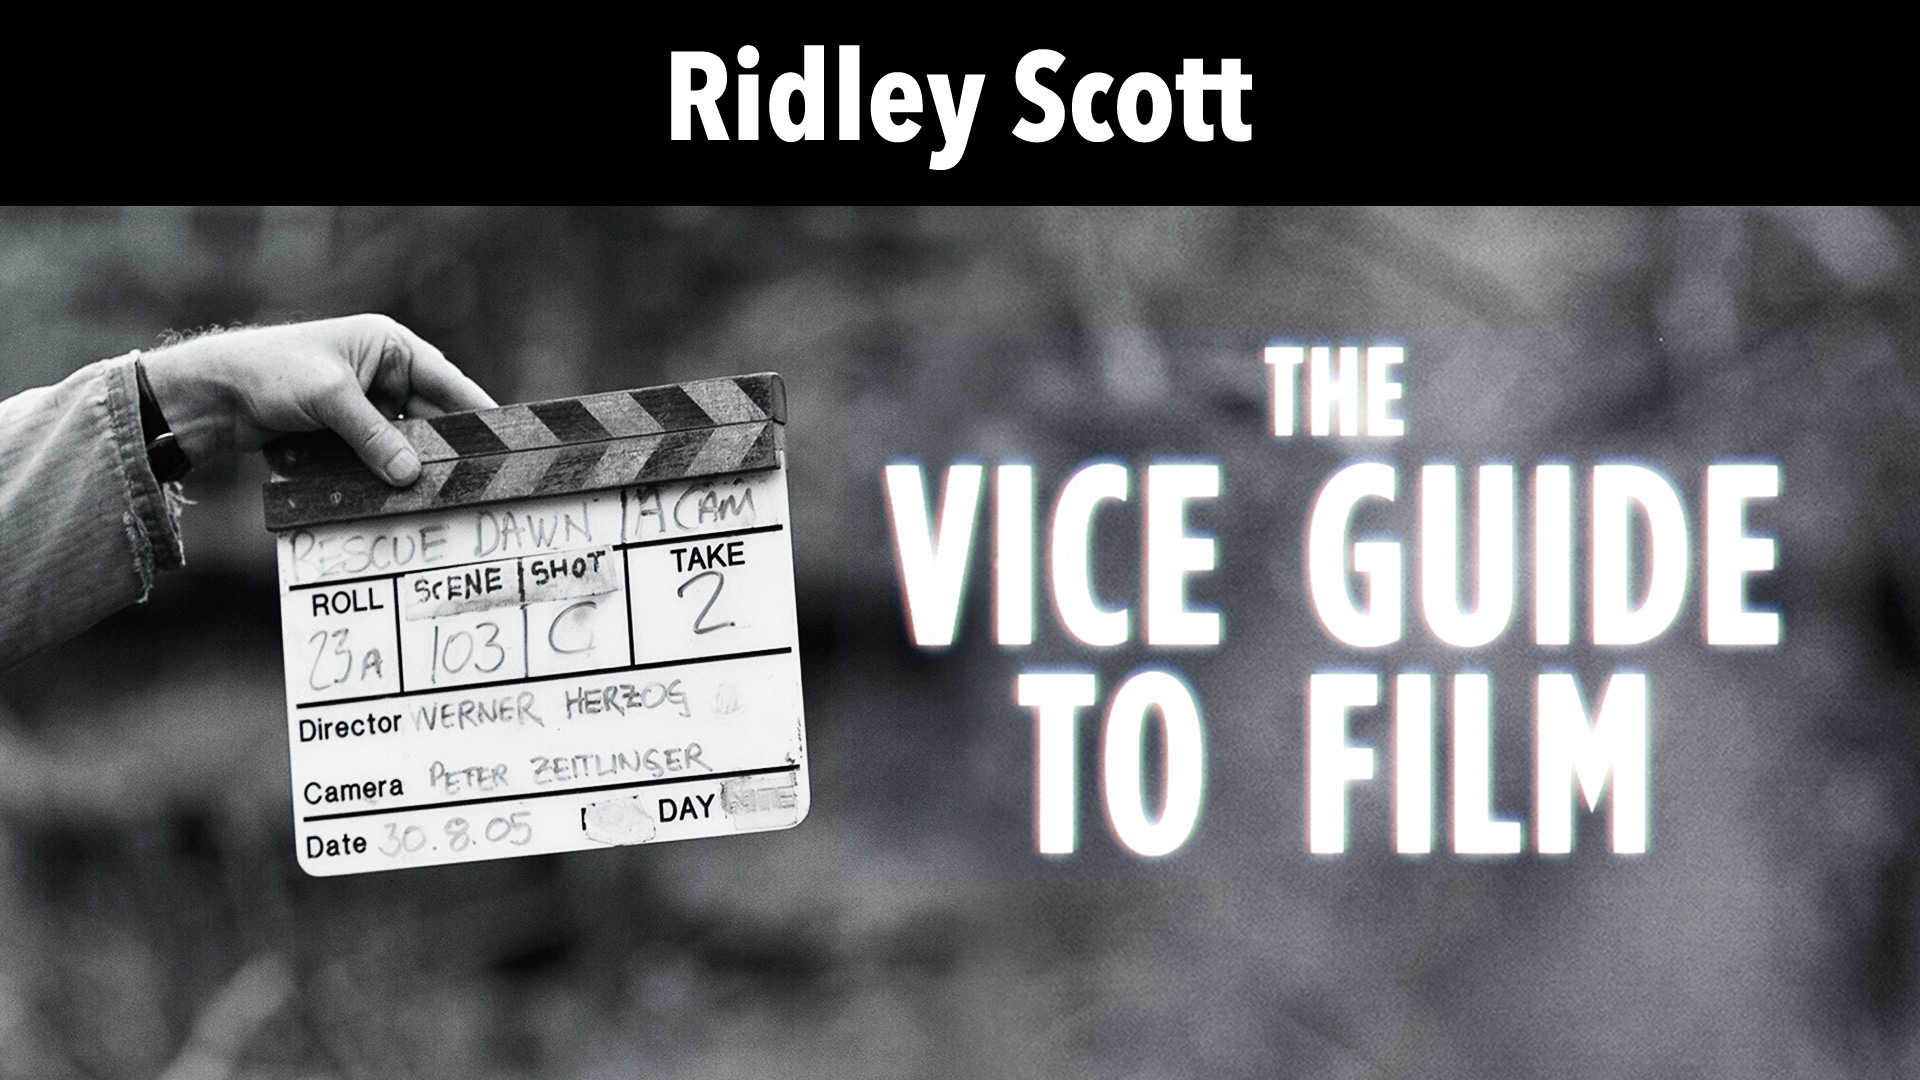 Ridley Scott: Vice Guide To Film